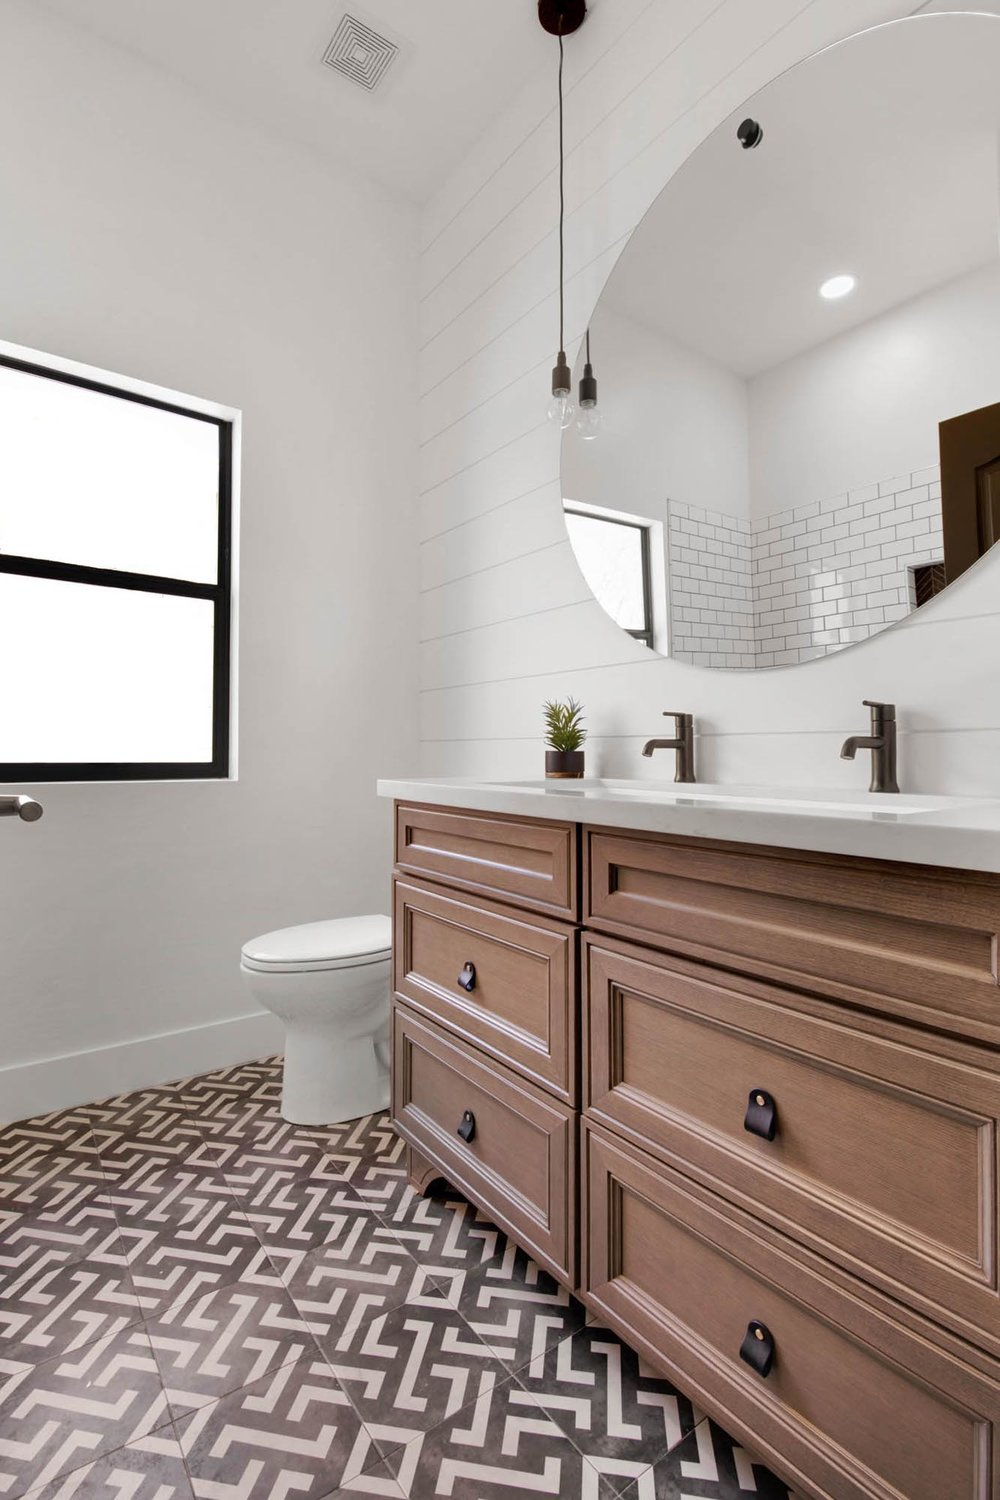 Toilet room with sink and stylish mirror